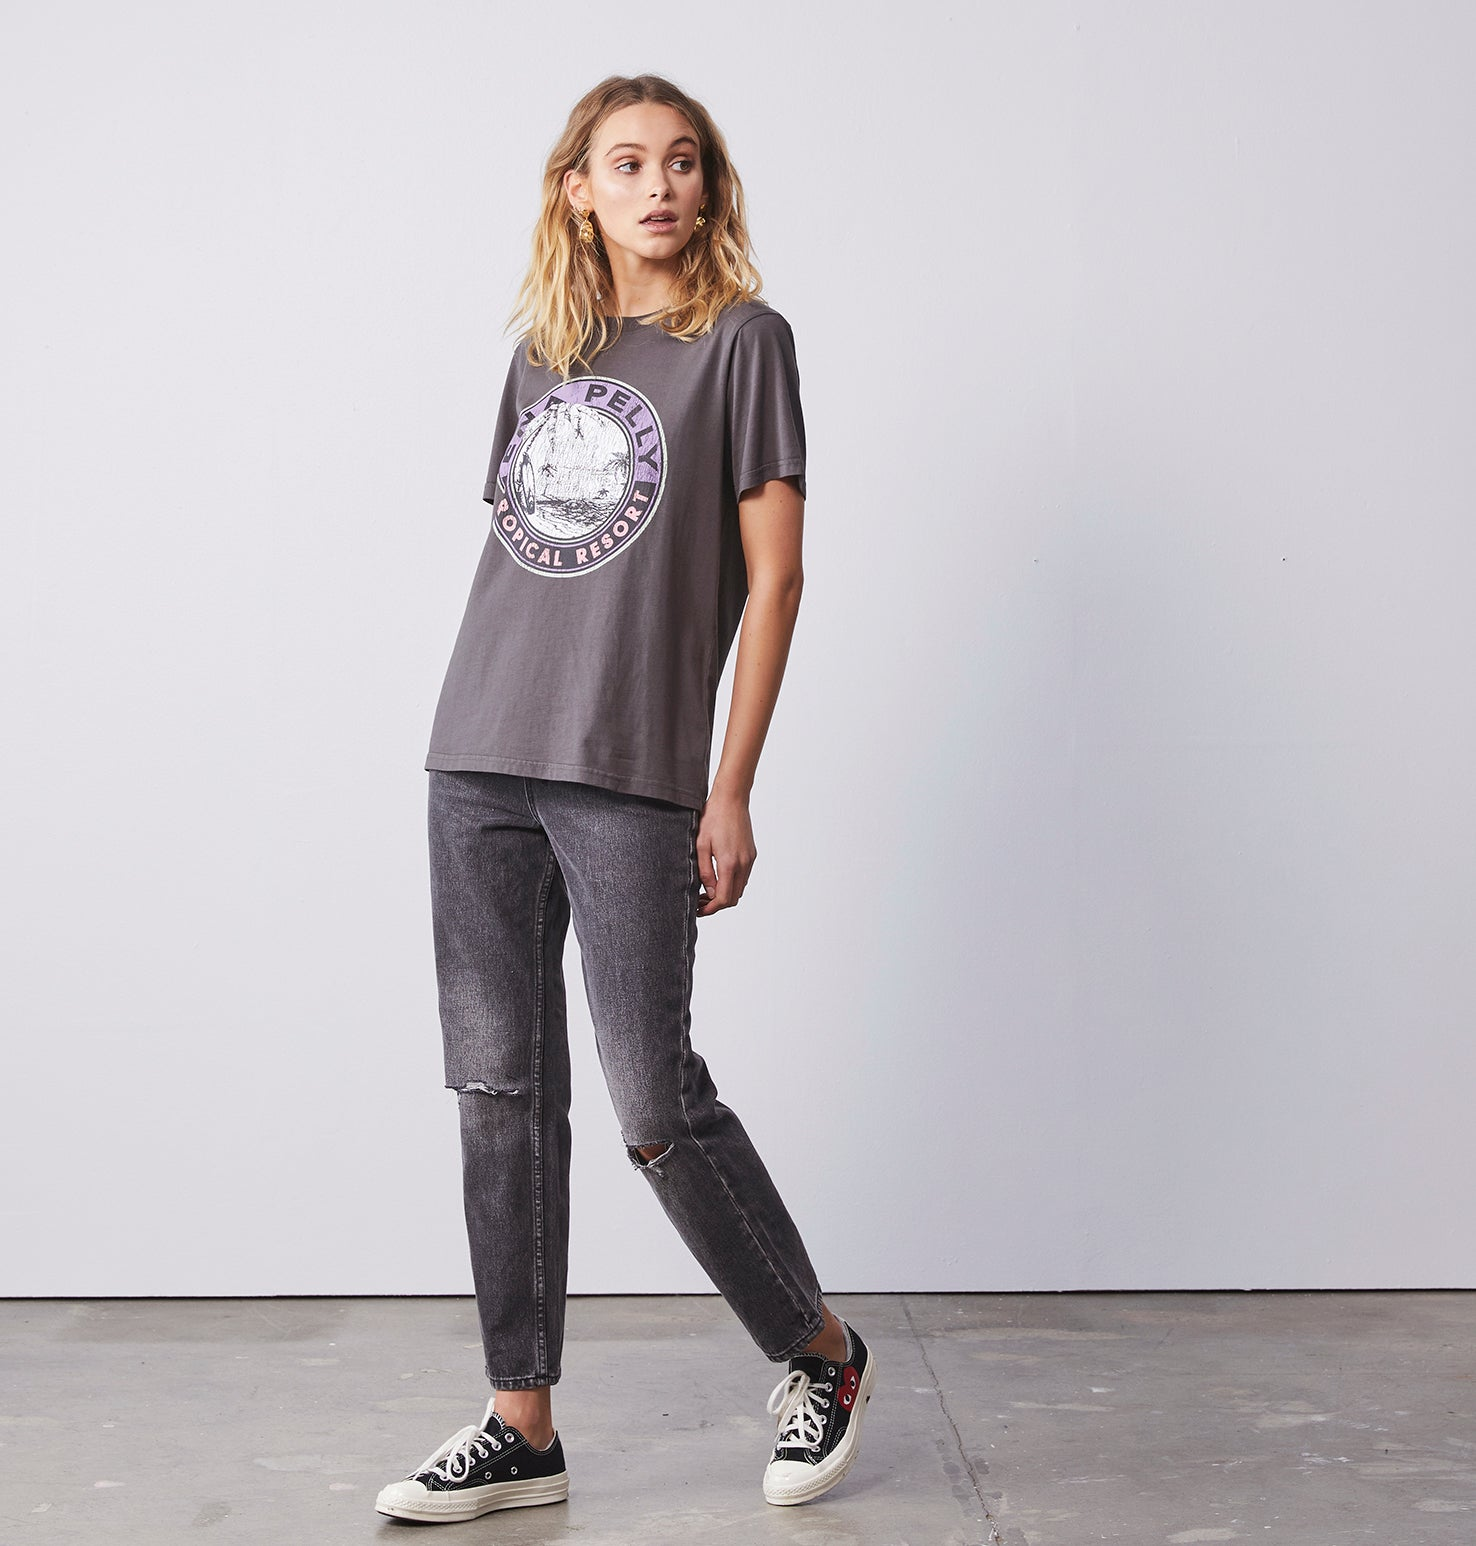 Tropical Resort Graphic Tee - Faded Black